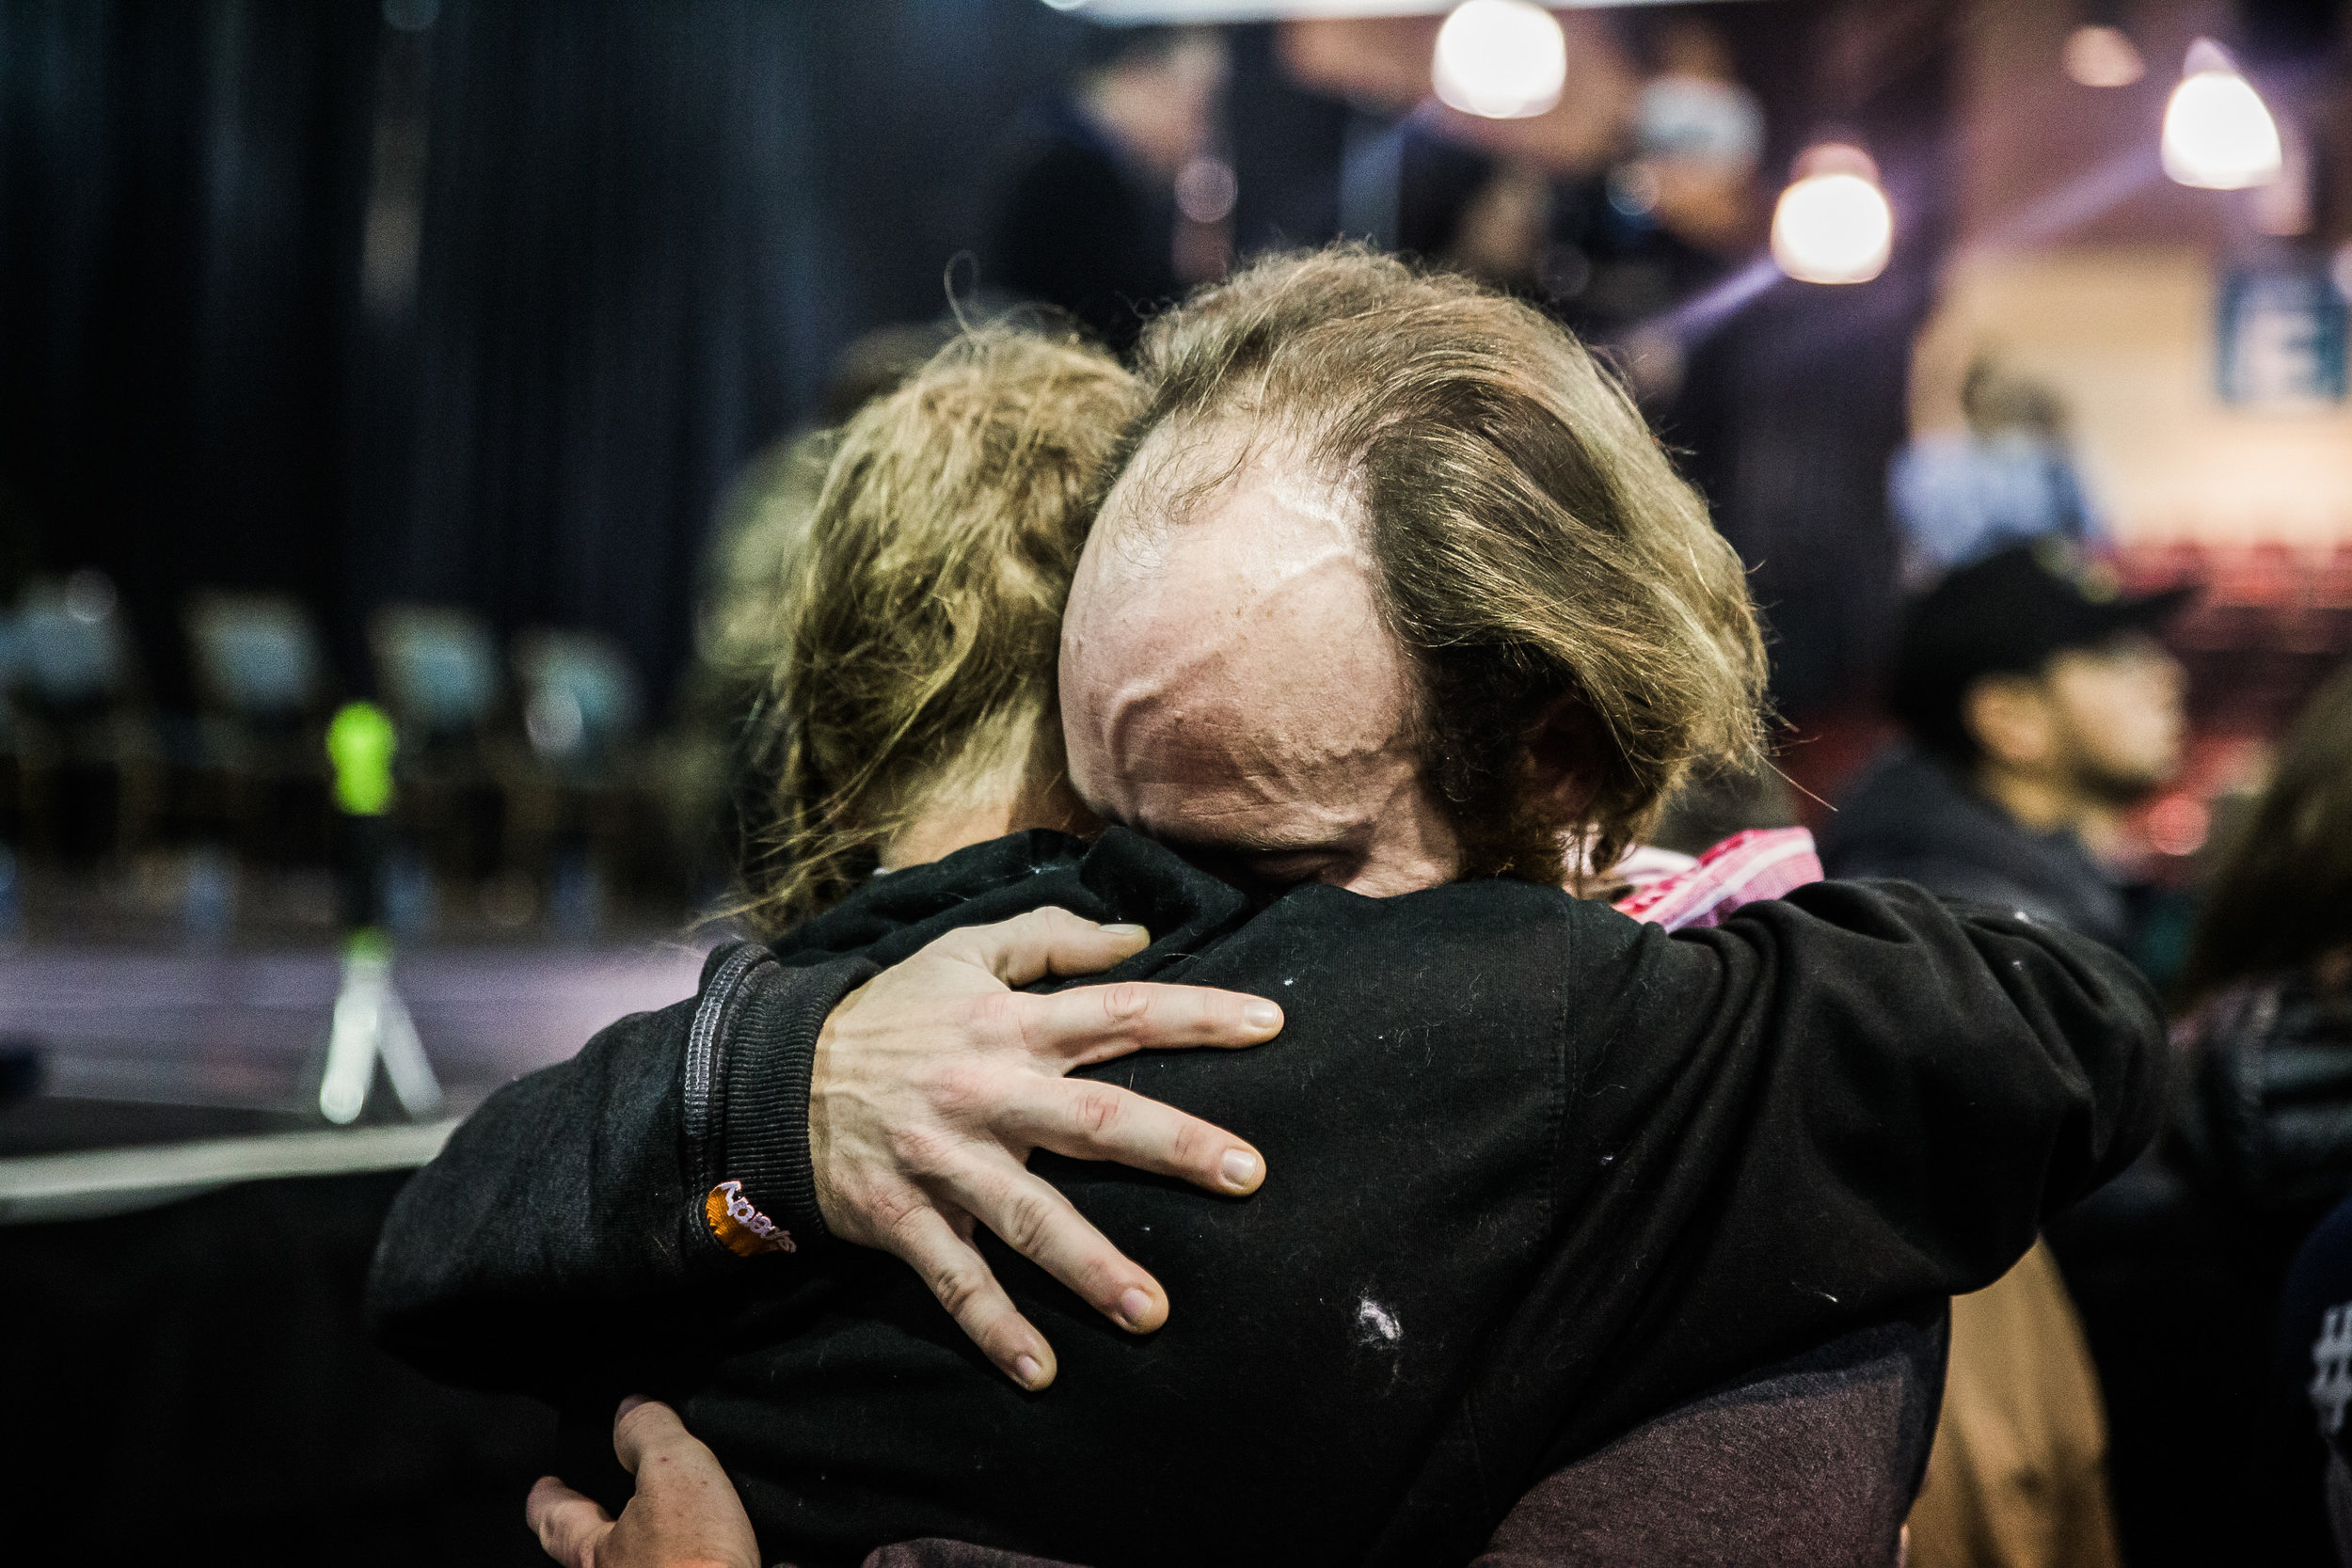 Two veterans embrace each other during a prayer sung by the Elders. With emotions running high during the forgiveness ceremony, many veterans broke down into tears. Looking around, you could see how much this meant to everyone.  Fort Yates, ND December 5th, 2016.